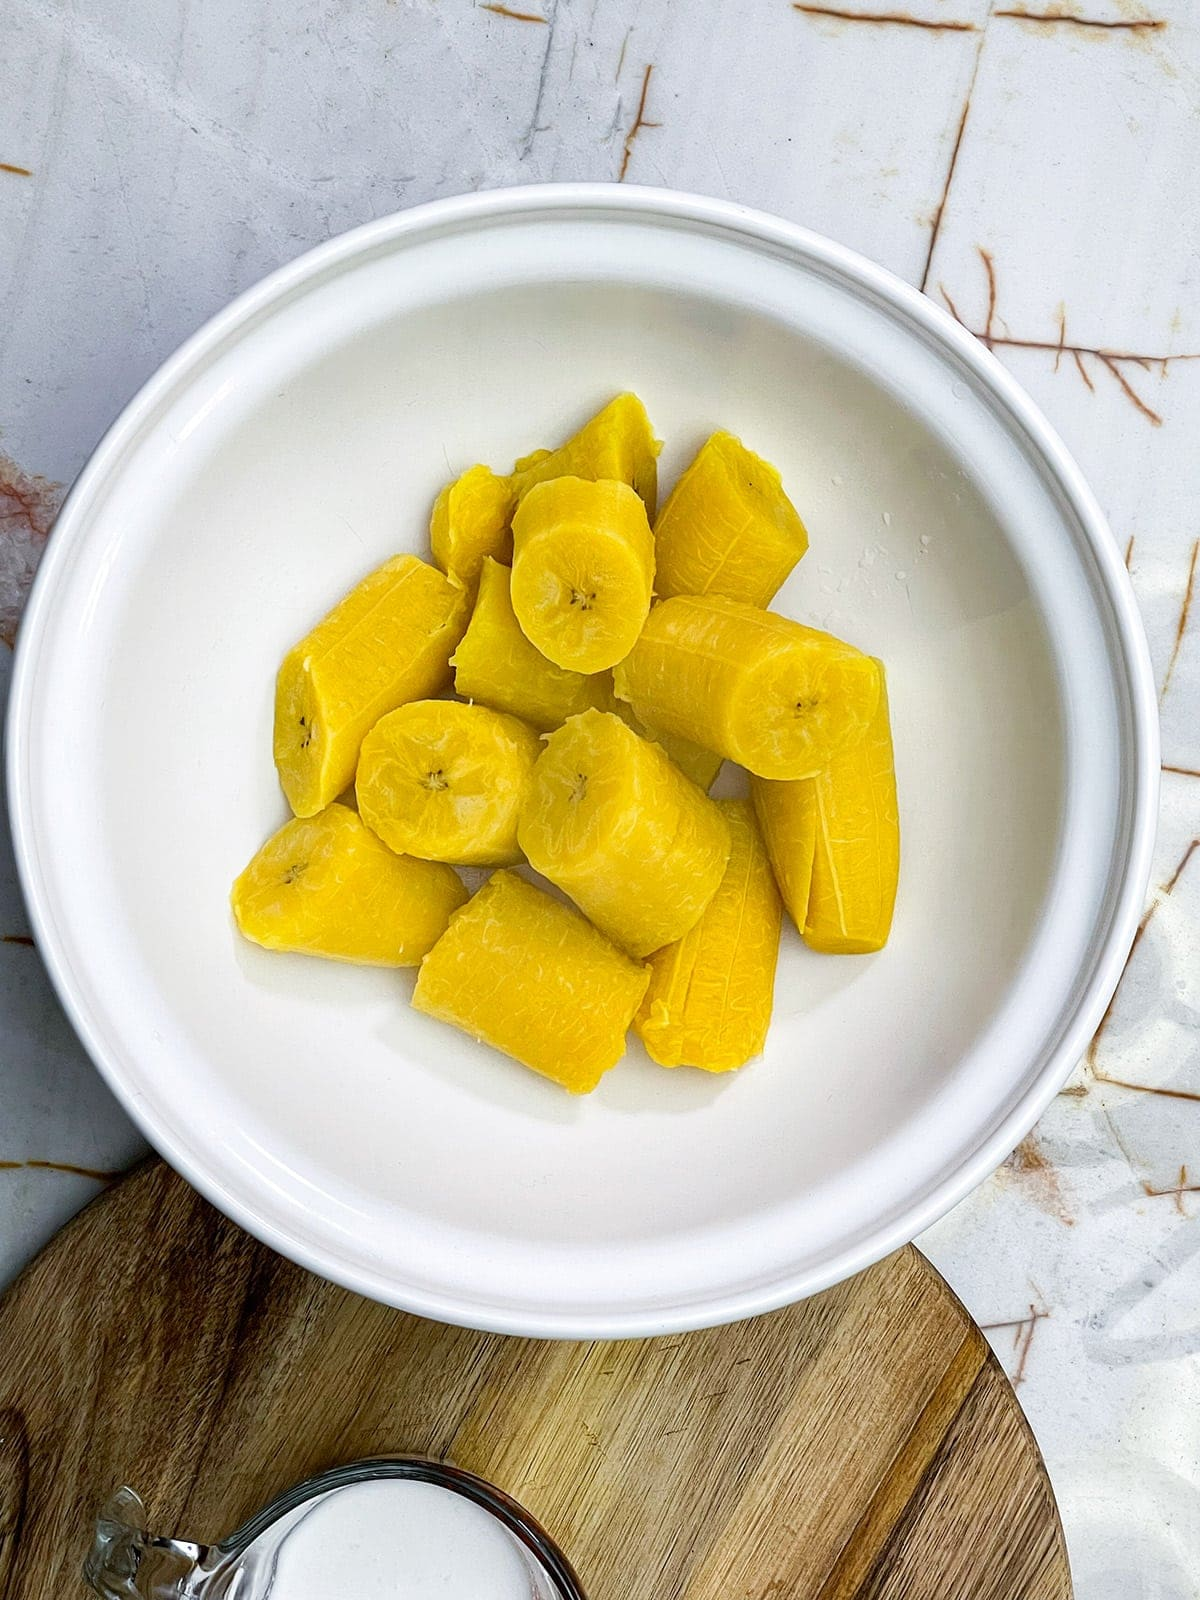 boiled plantains in a white bowl on a beige background